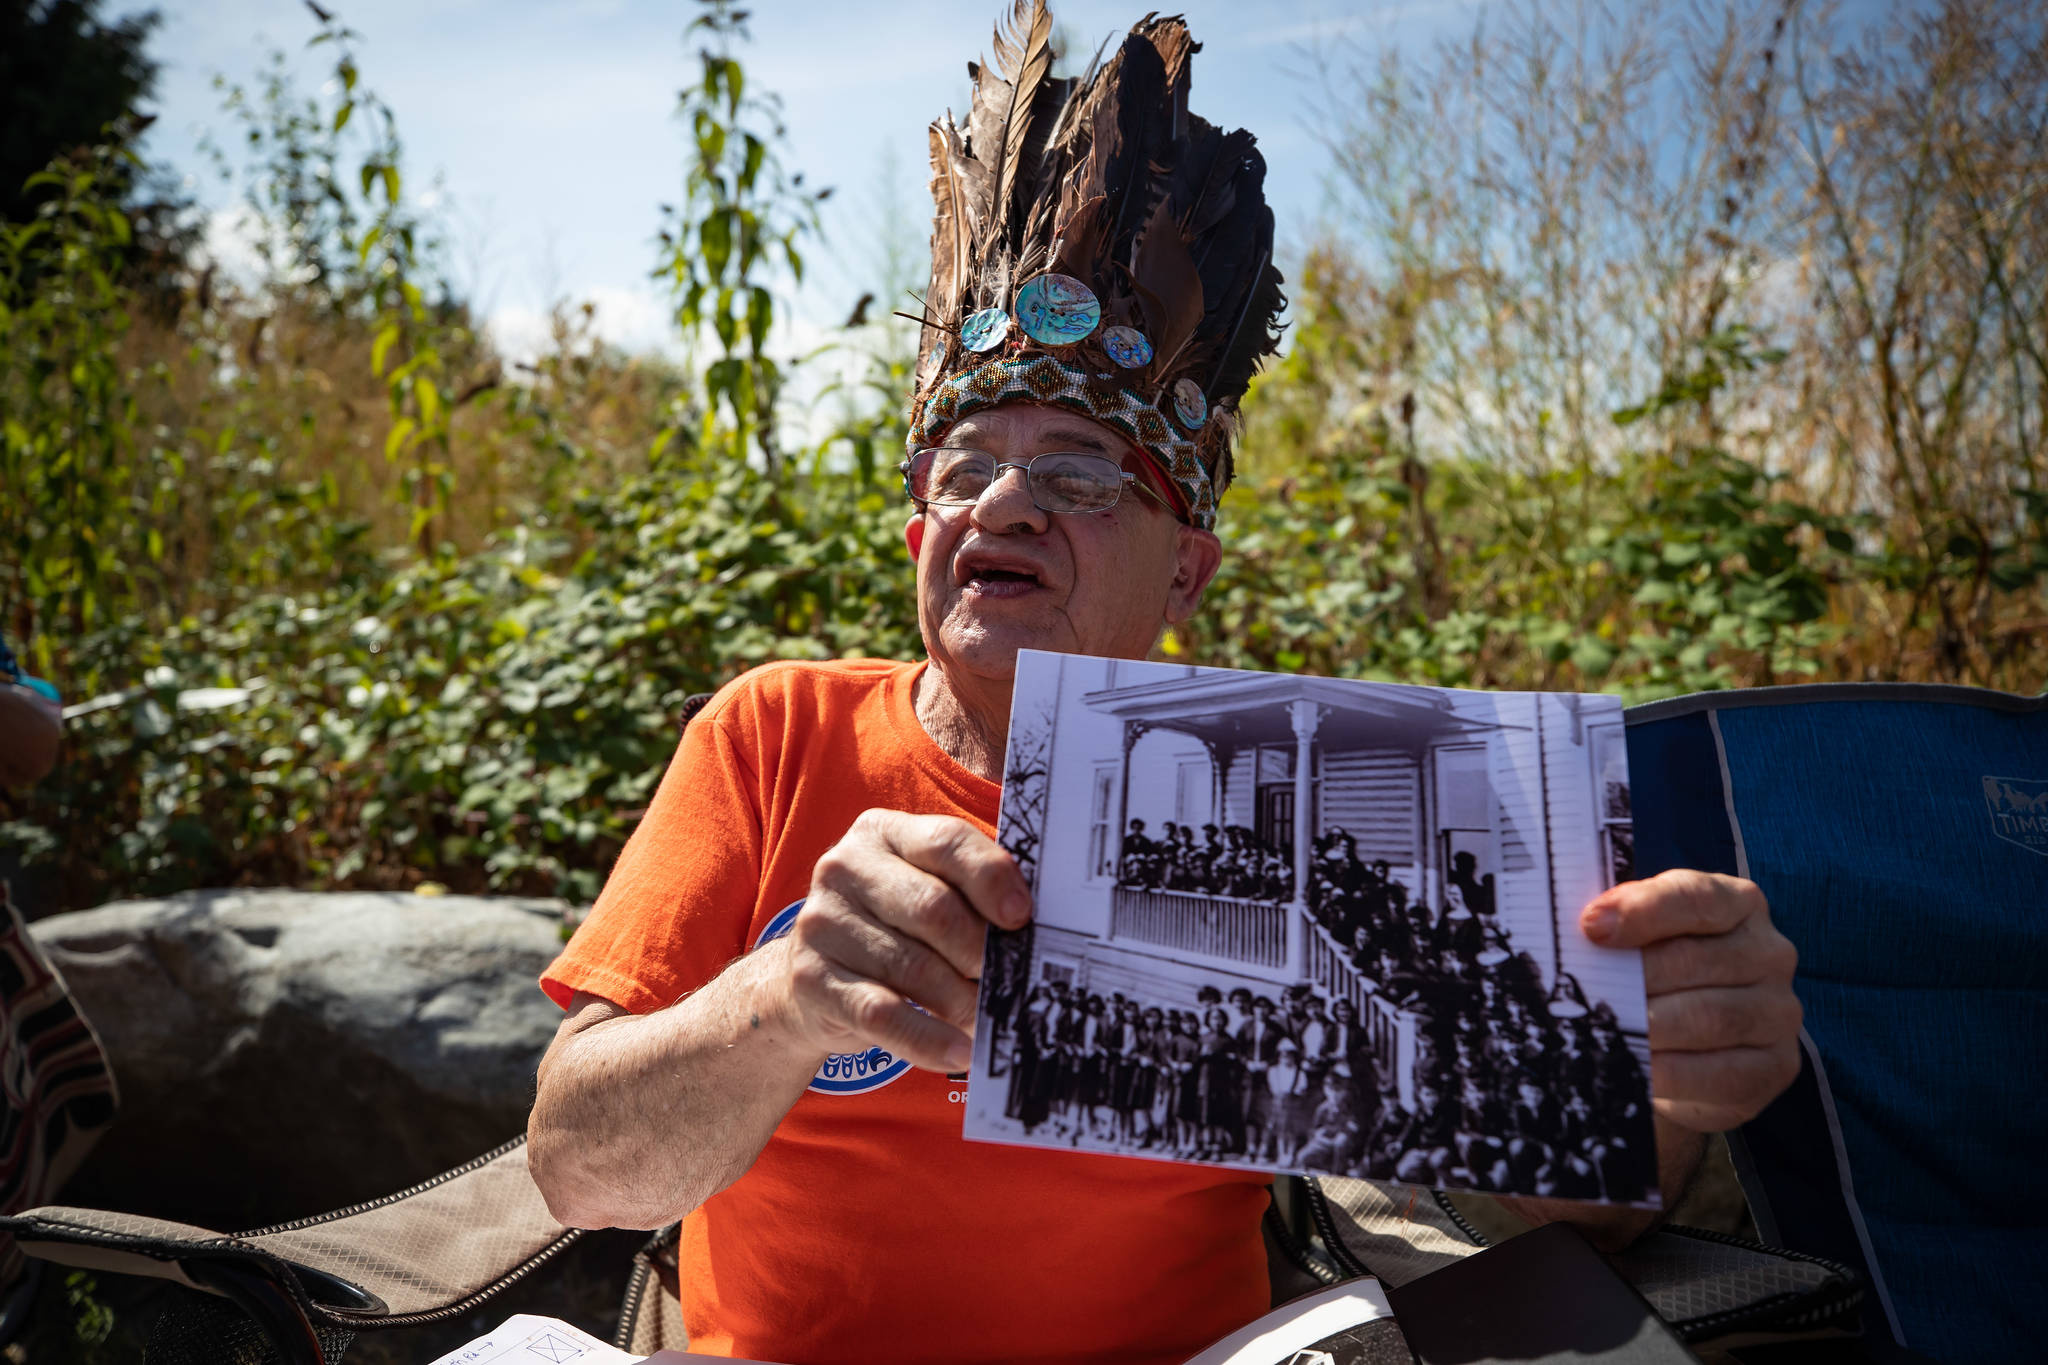 Willie Nahanee, 79, of the Squamish Nation, who attended the former St. Paul Indian Residential School for 10 years and the Kamloops Indian Residential School for one year, holds one of his class photographs from St. Paul, in North Vancouver, on Tuesday, August 10, 2021. The Squamish Nation, together with the support of the Tsleil-Waututh and Musqueam First Nations and the Catholic Archdiocese will be launching an investigation into the former residential school. THE CANADIAN PRESS/Darryl Dyck